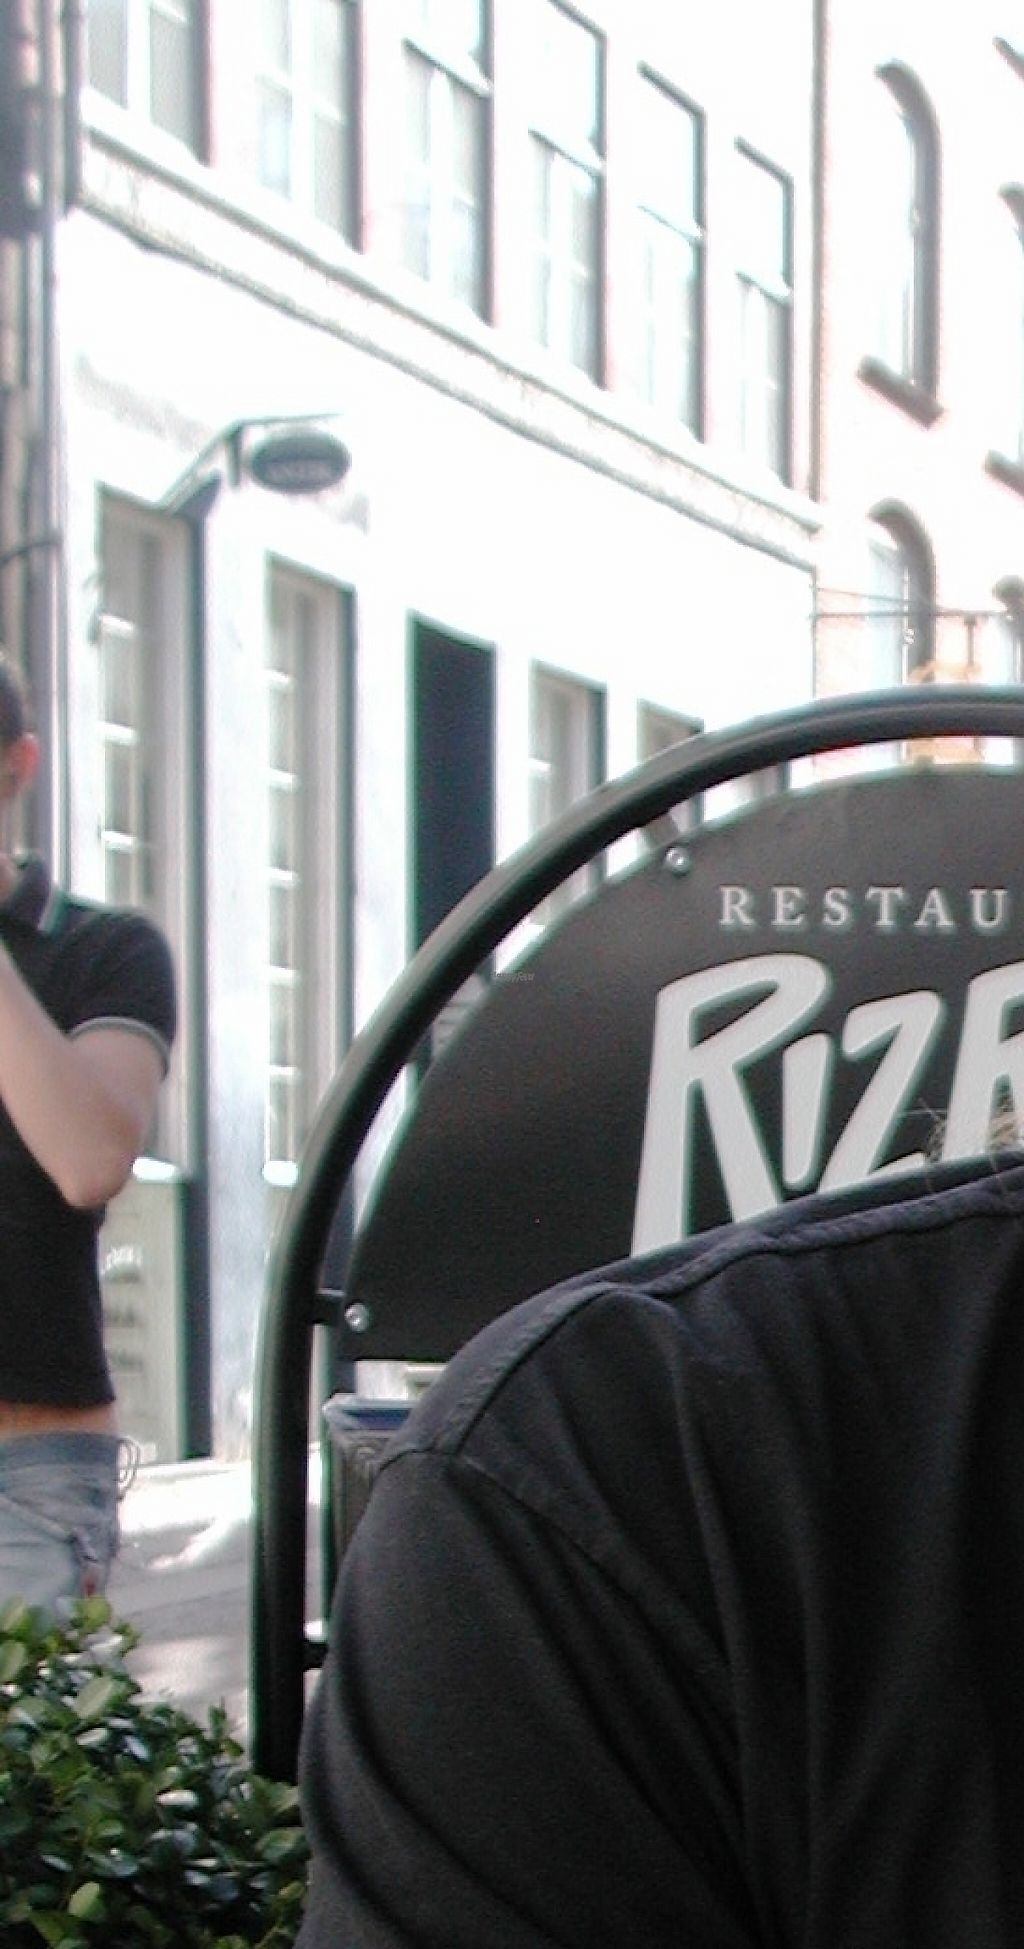 """Photo of RizRaz - Kompagnistraede  by <a href=""""/members/profile/Marie-Jeanne"""">Marie-Jeanne</a> <br/>The terrasse nicely located on a pedestrian street with bicycles.  It is nice looking at Danish people going on with their busy daily life <br/> March 28, 2017  - <a href='/contact/abuse/image/6697/242210'>Report</a>"""